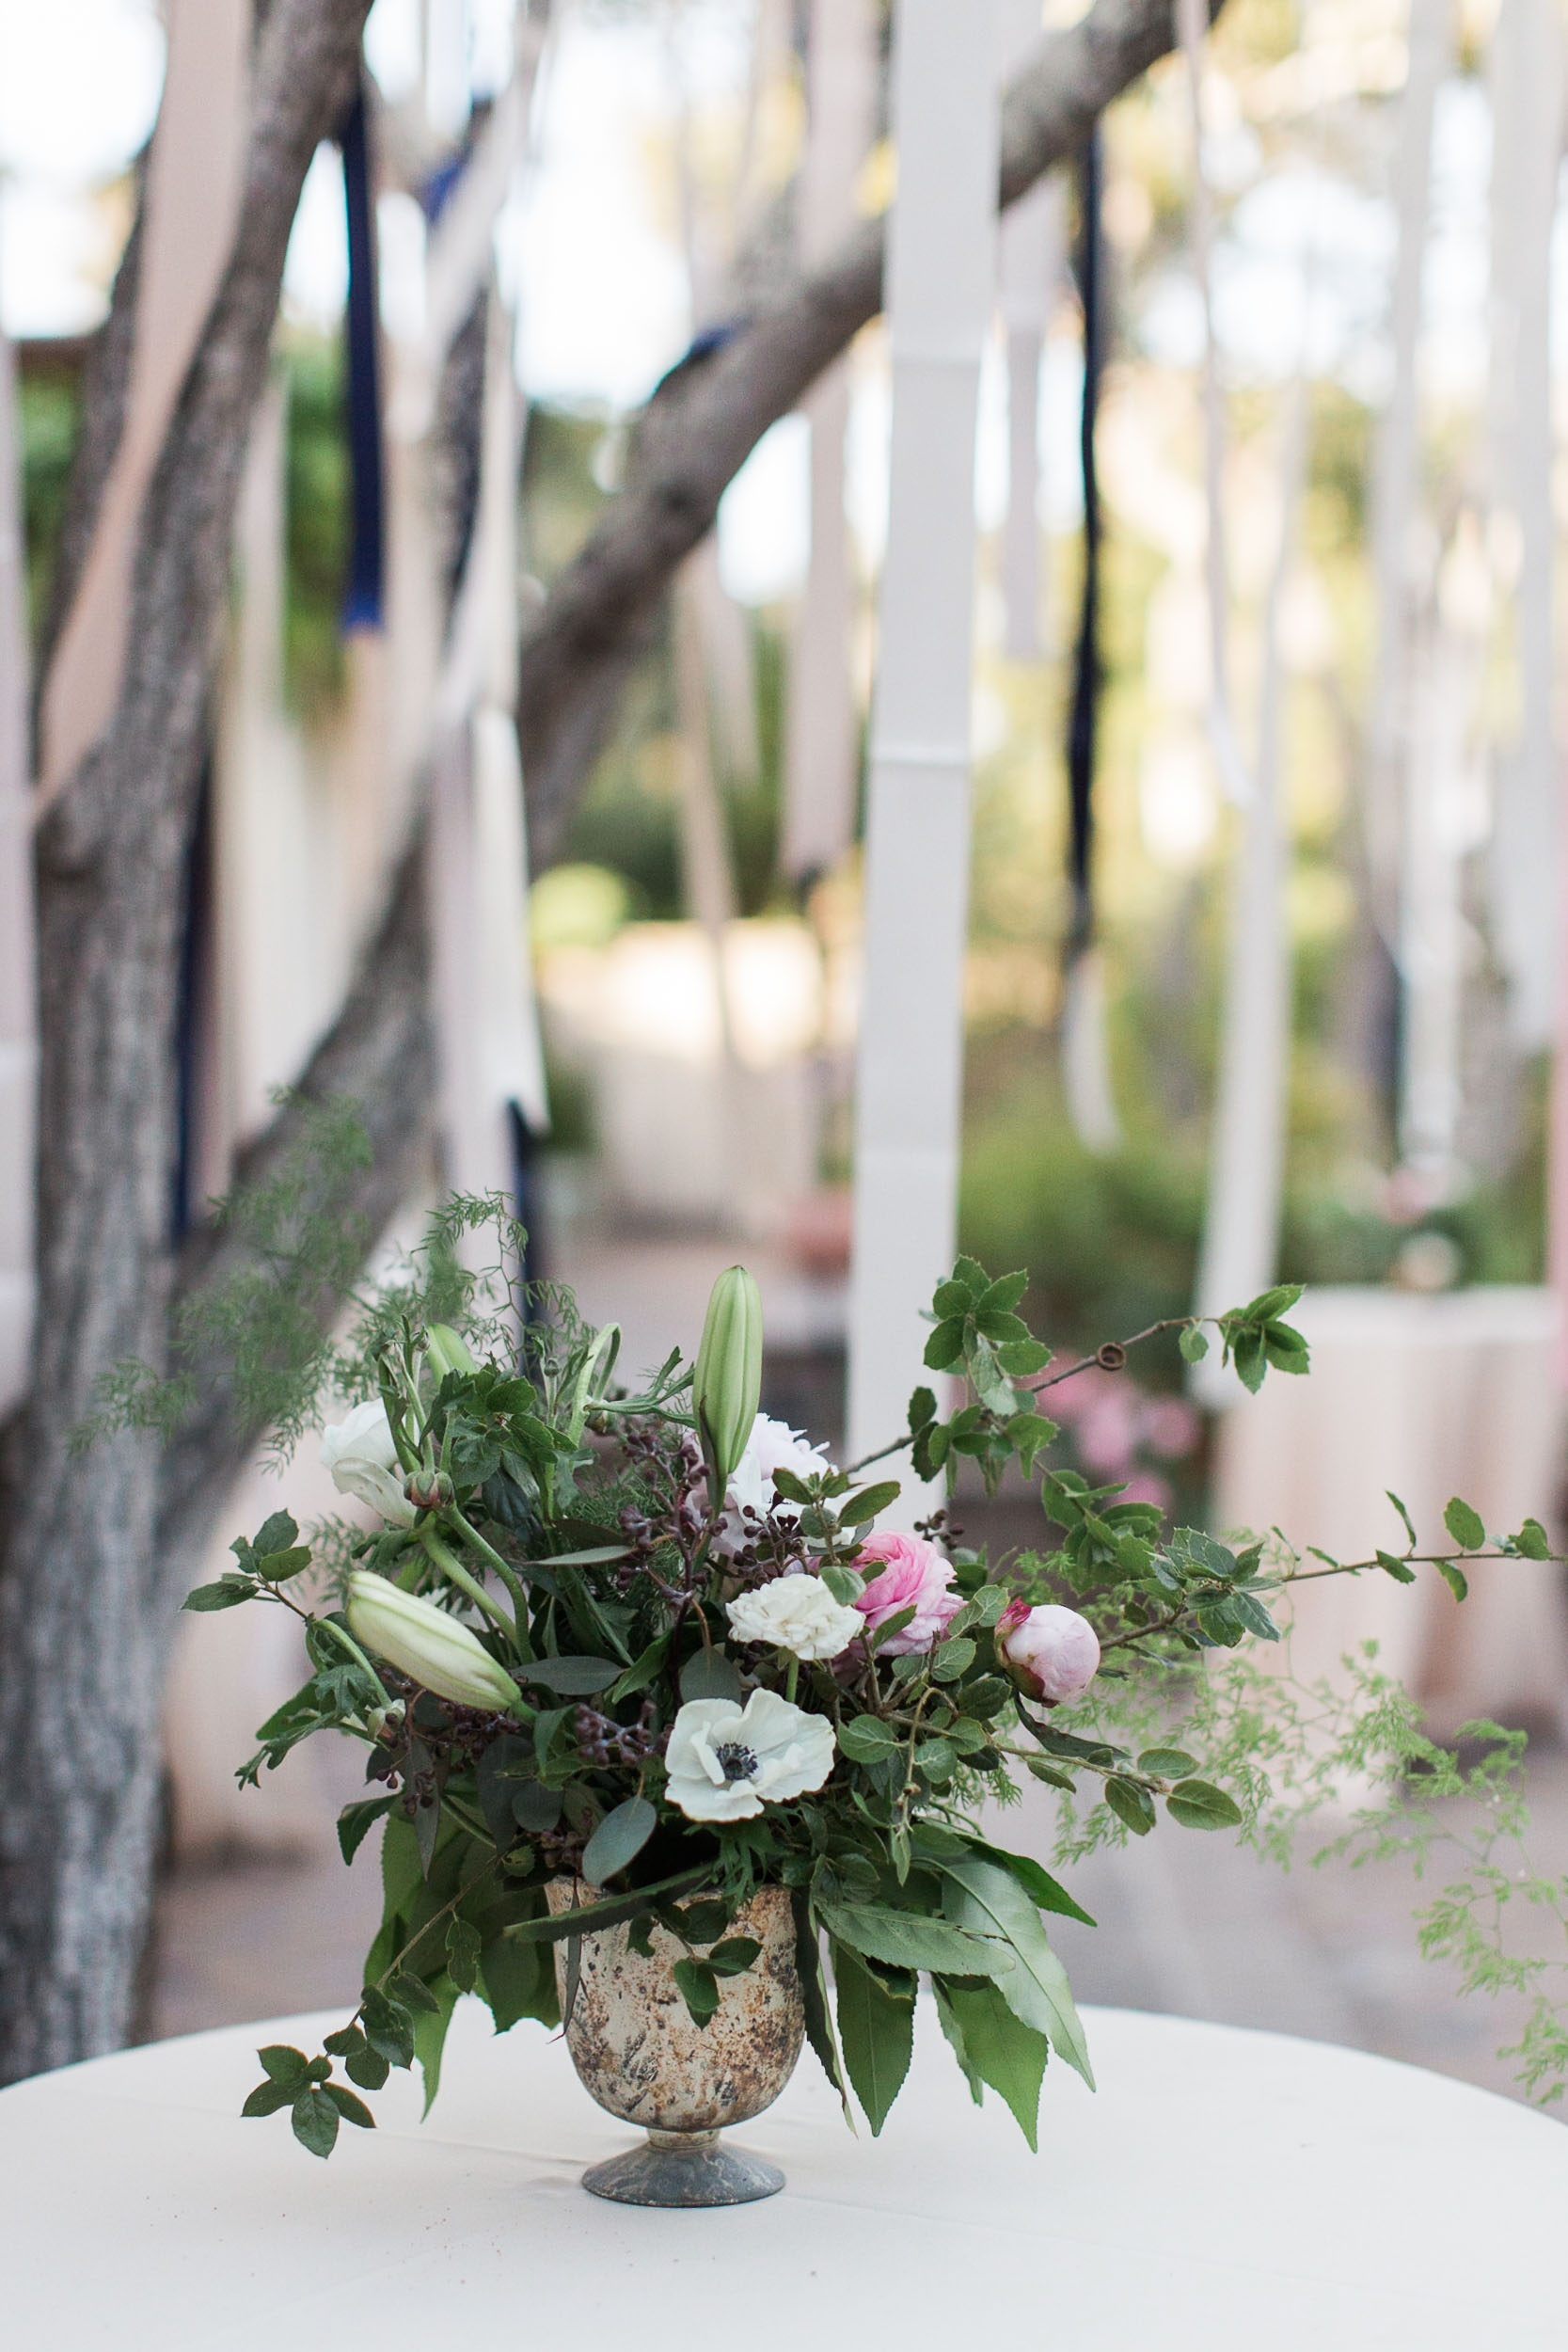 Texas Grandeur California Coast Wedding_Pebble Beach_Buena Lane Photography_102.jpg